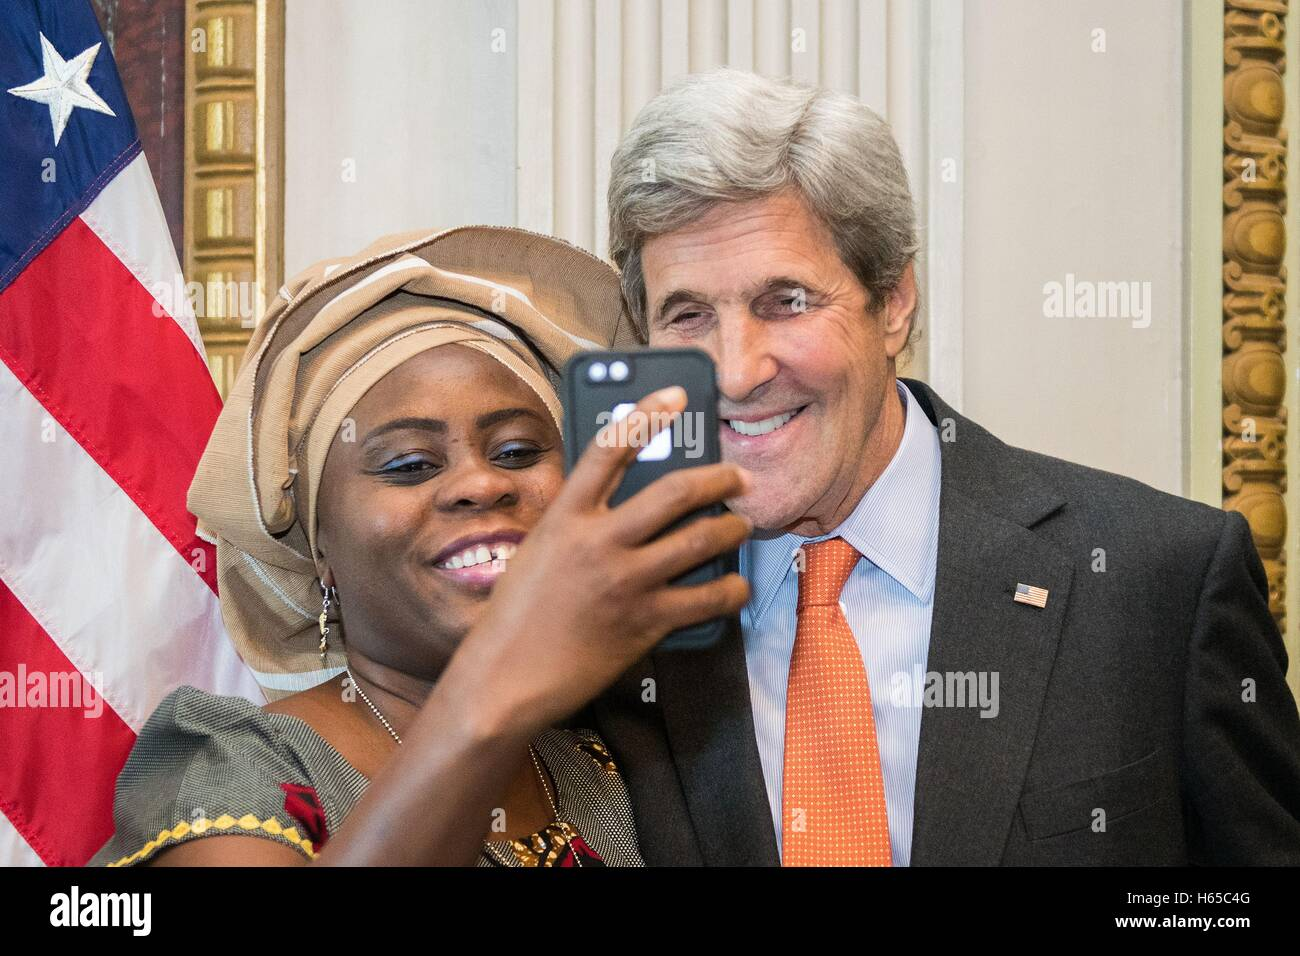 Washington DC, United States. 24 Oct, 2016. US Secretary of State John Kerry takes a selfie with an outstanding Stock Photo